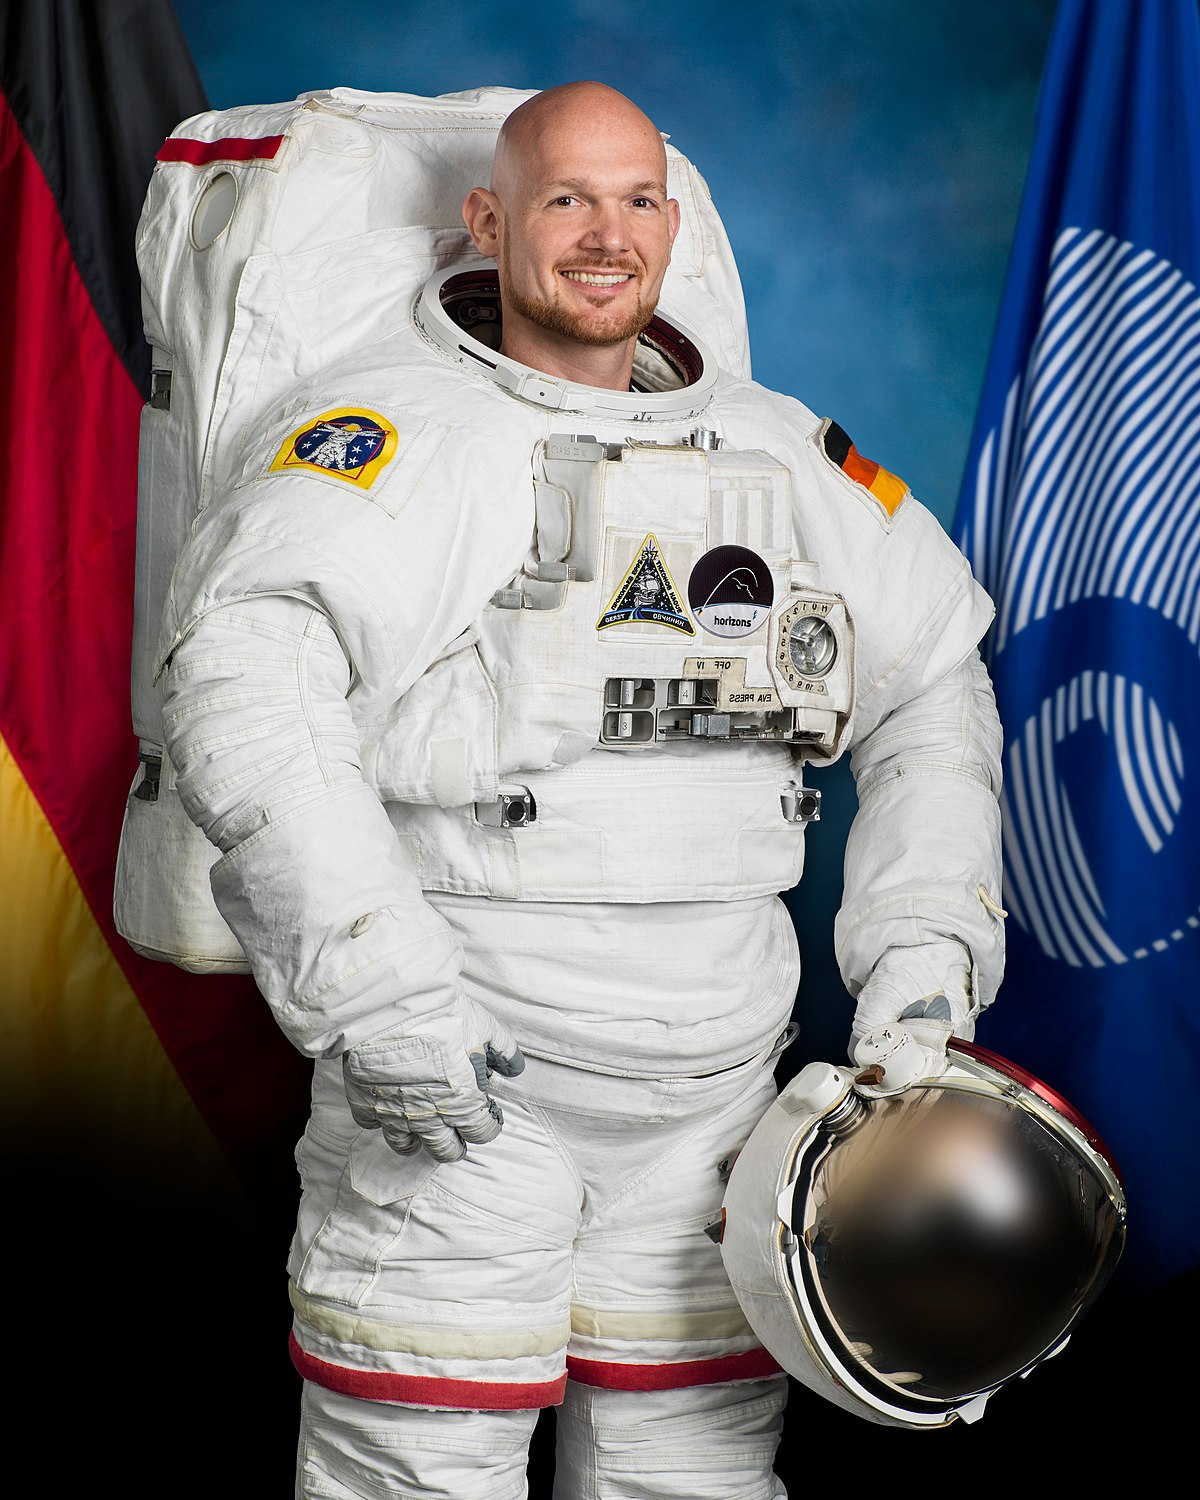 an astronaut in his space suit and with a propulsion - photo #6